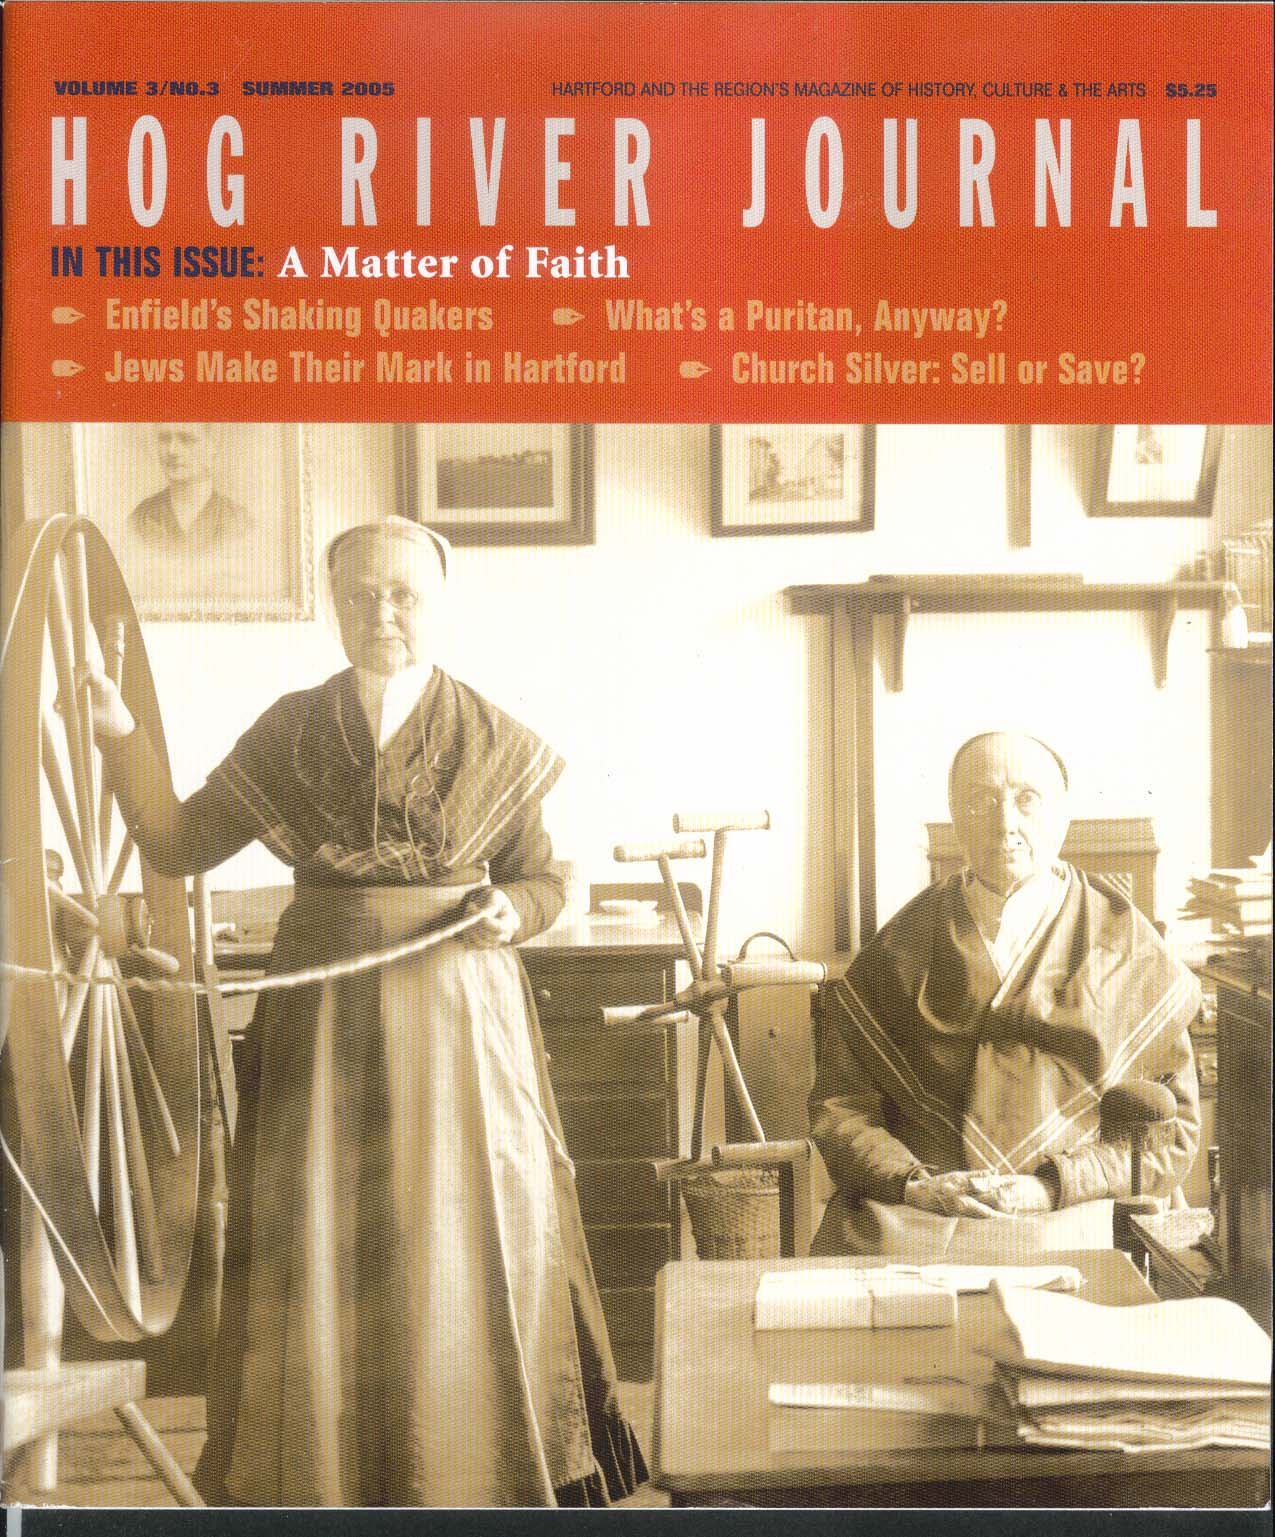 HOG RIVER JOURNAL V3 #3 Enfield Quakers Puritans Jews in Hartford + Summer 2005